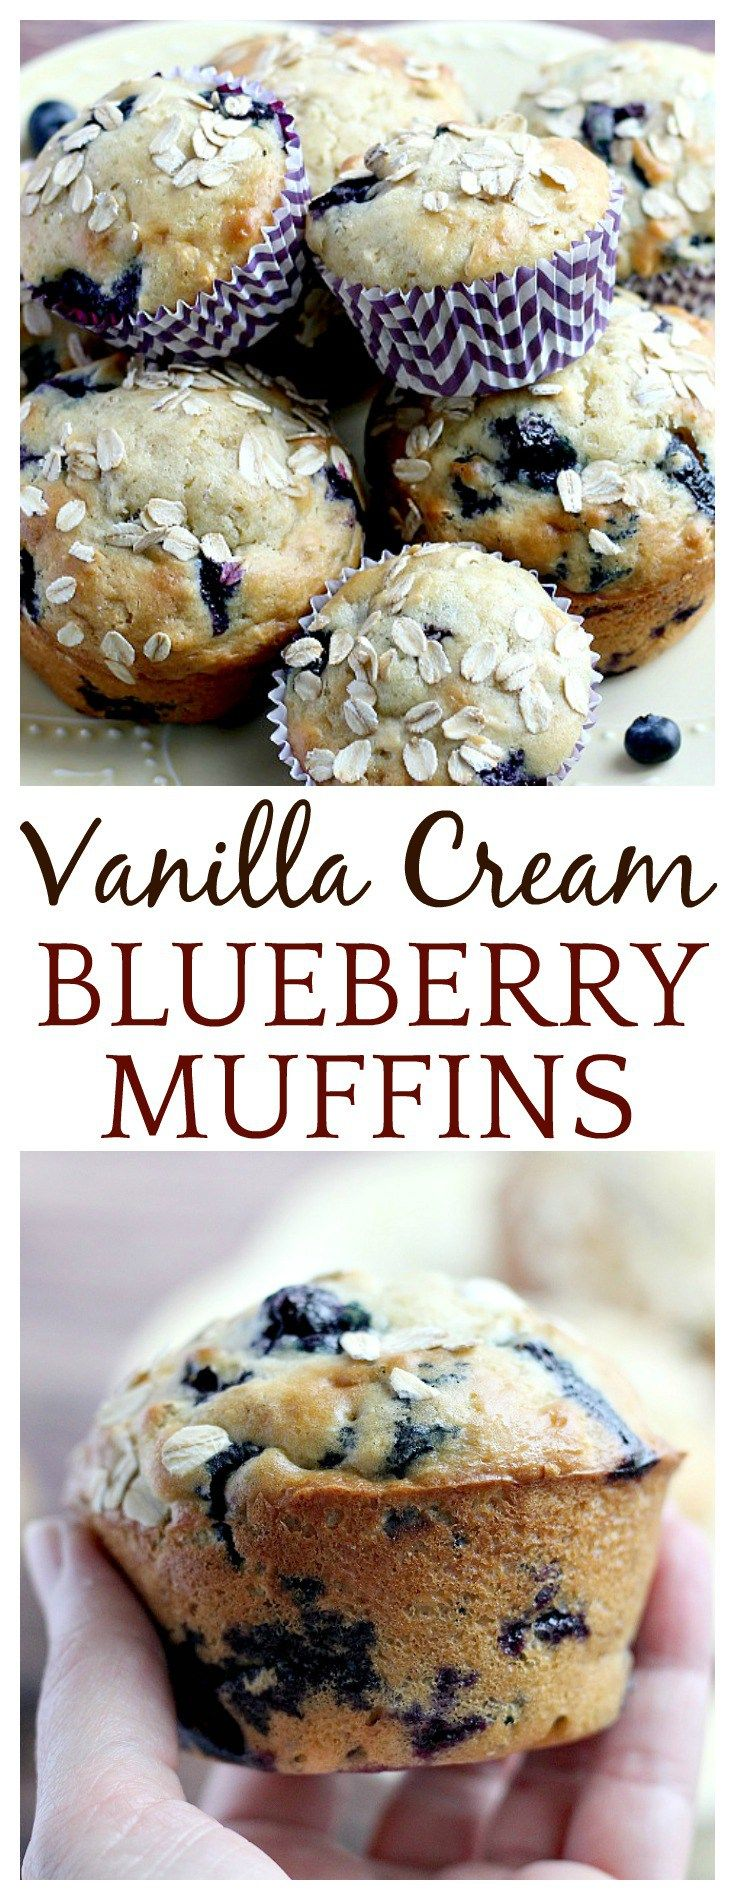 These are not your typical blueberry muffins! The addition of Greek yogurt and vanilla coffee creamer make these Vanilla Cream Blueberry Oat Muffins super moist. The vanilla is the perfect compliment to the sweet blueberries and oats add some whole grain goodness to the mix!